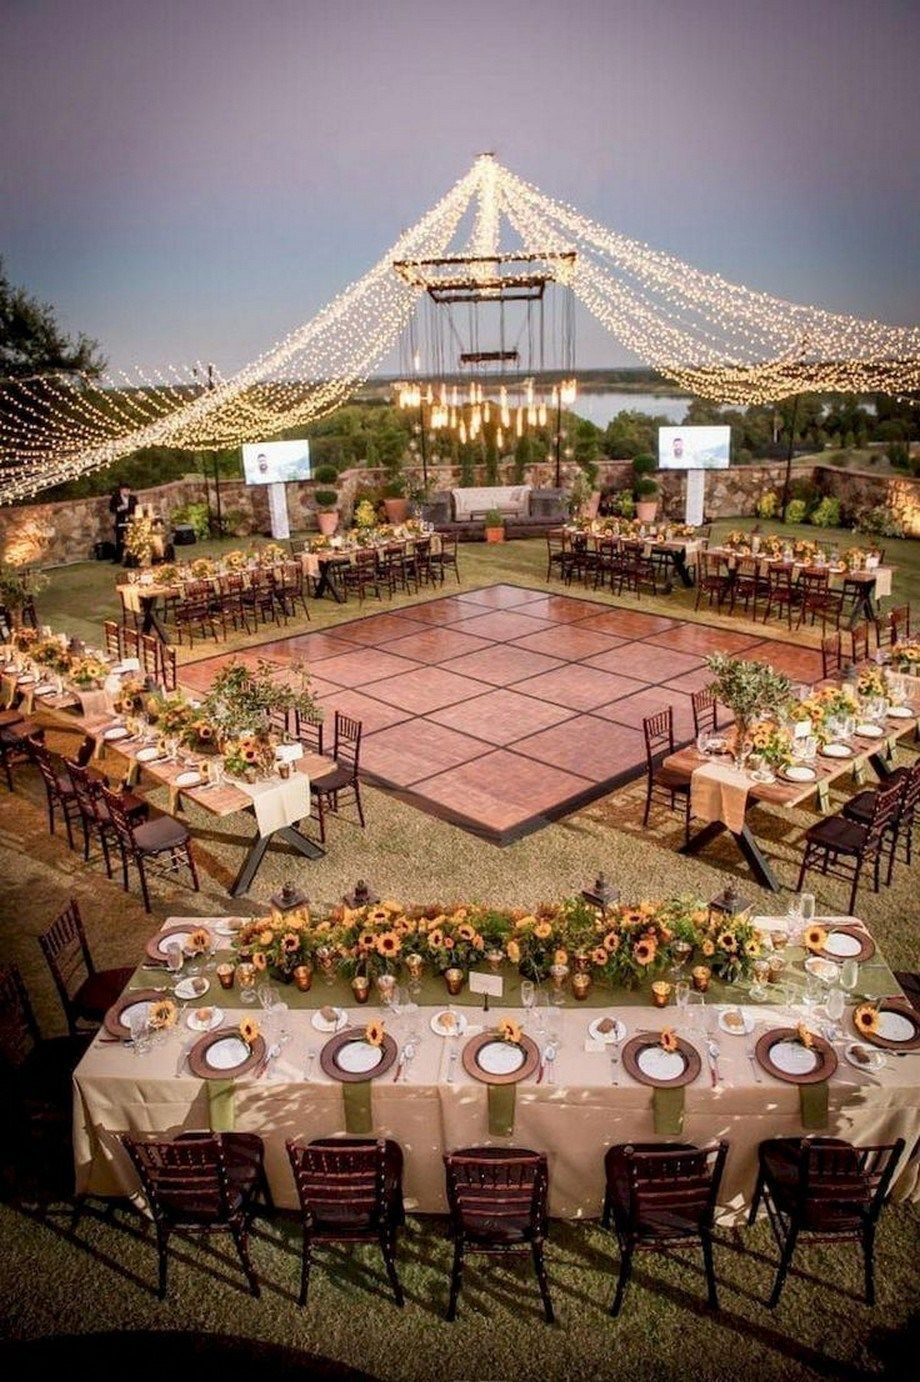 40 Ideas For a Rustic Wedding decorations rusticweddingdecorations rusticwedding weddingdecorations » Sassykatchy com is part of Orlando wedding venues -